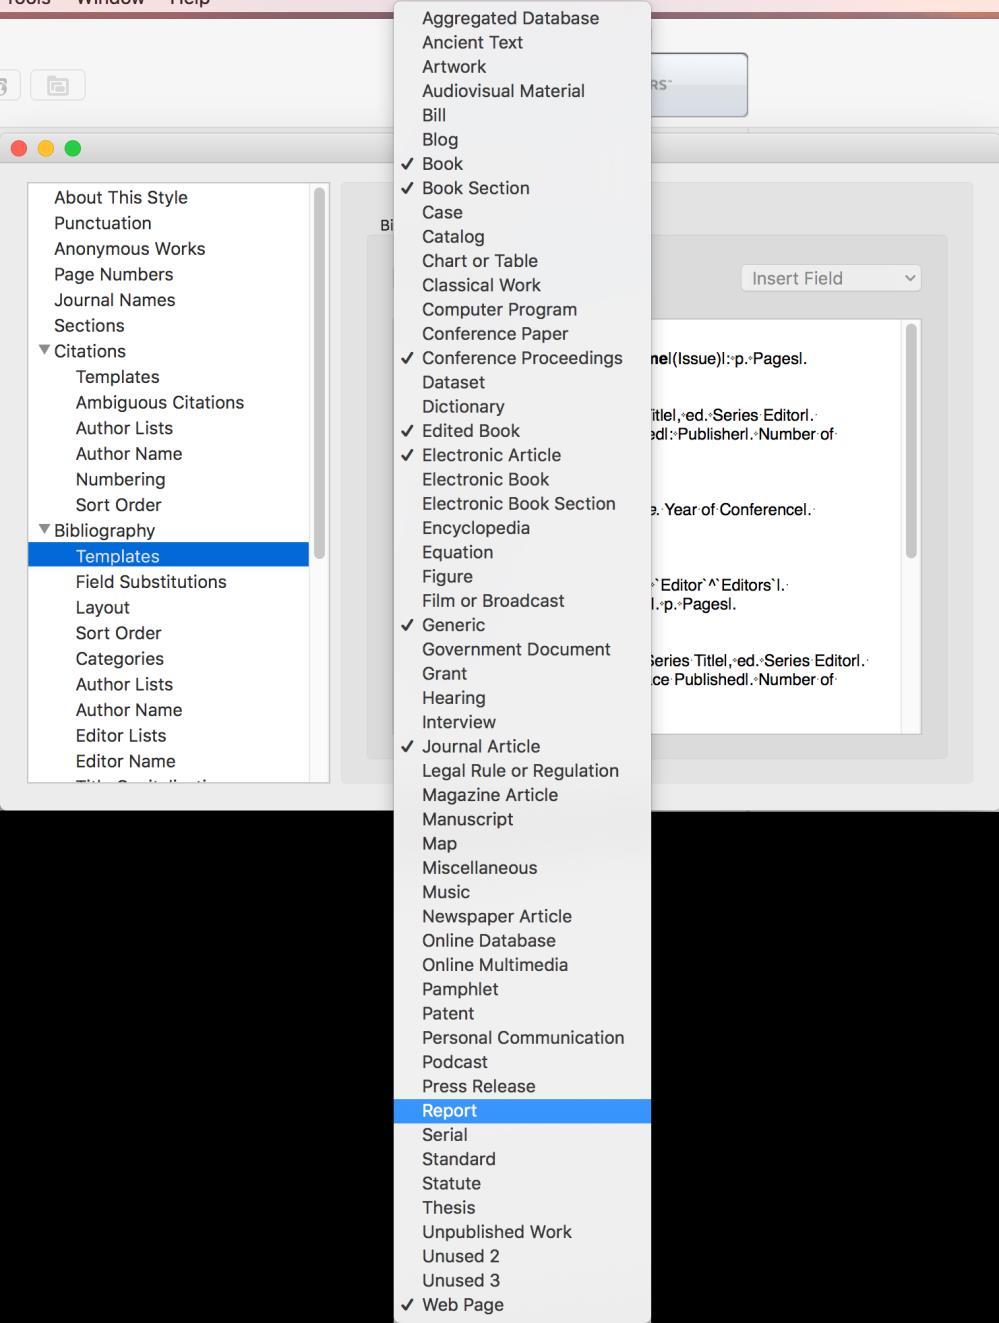 A new template for that reference type is added at the bottom of the Style window (scroll to the bottom of the Style window if you do not see it).